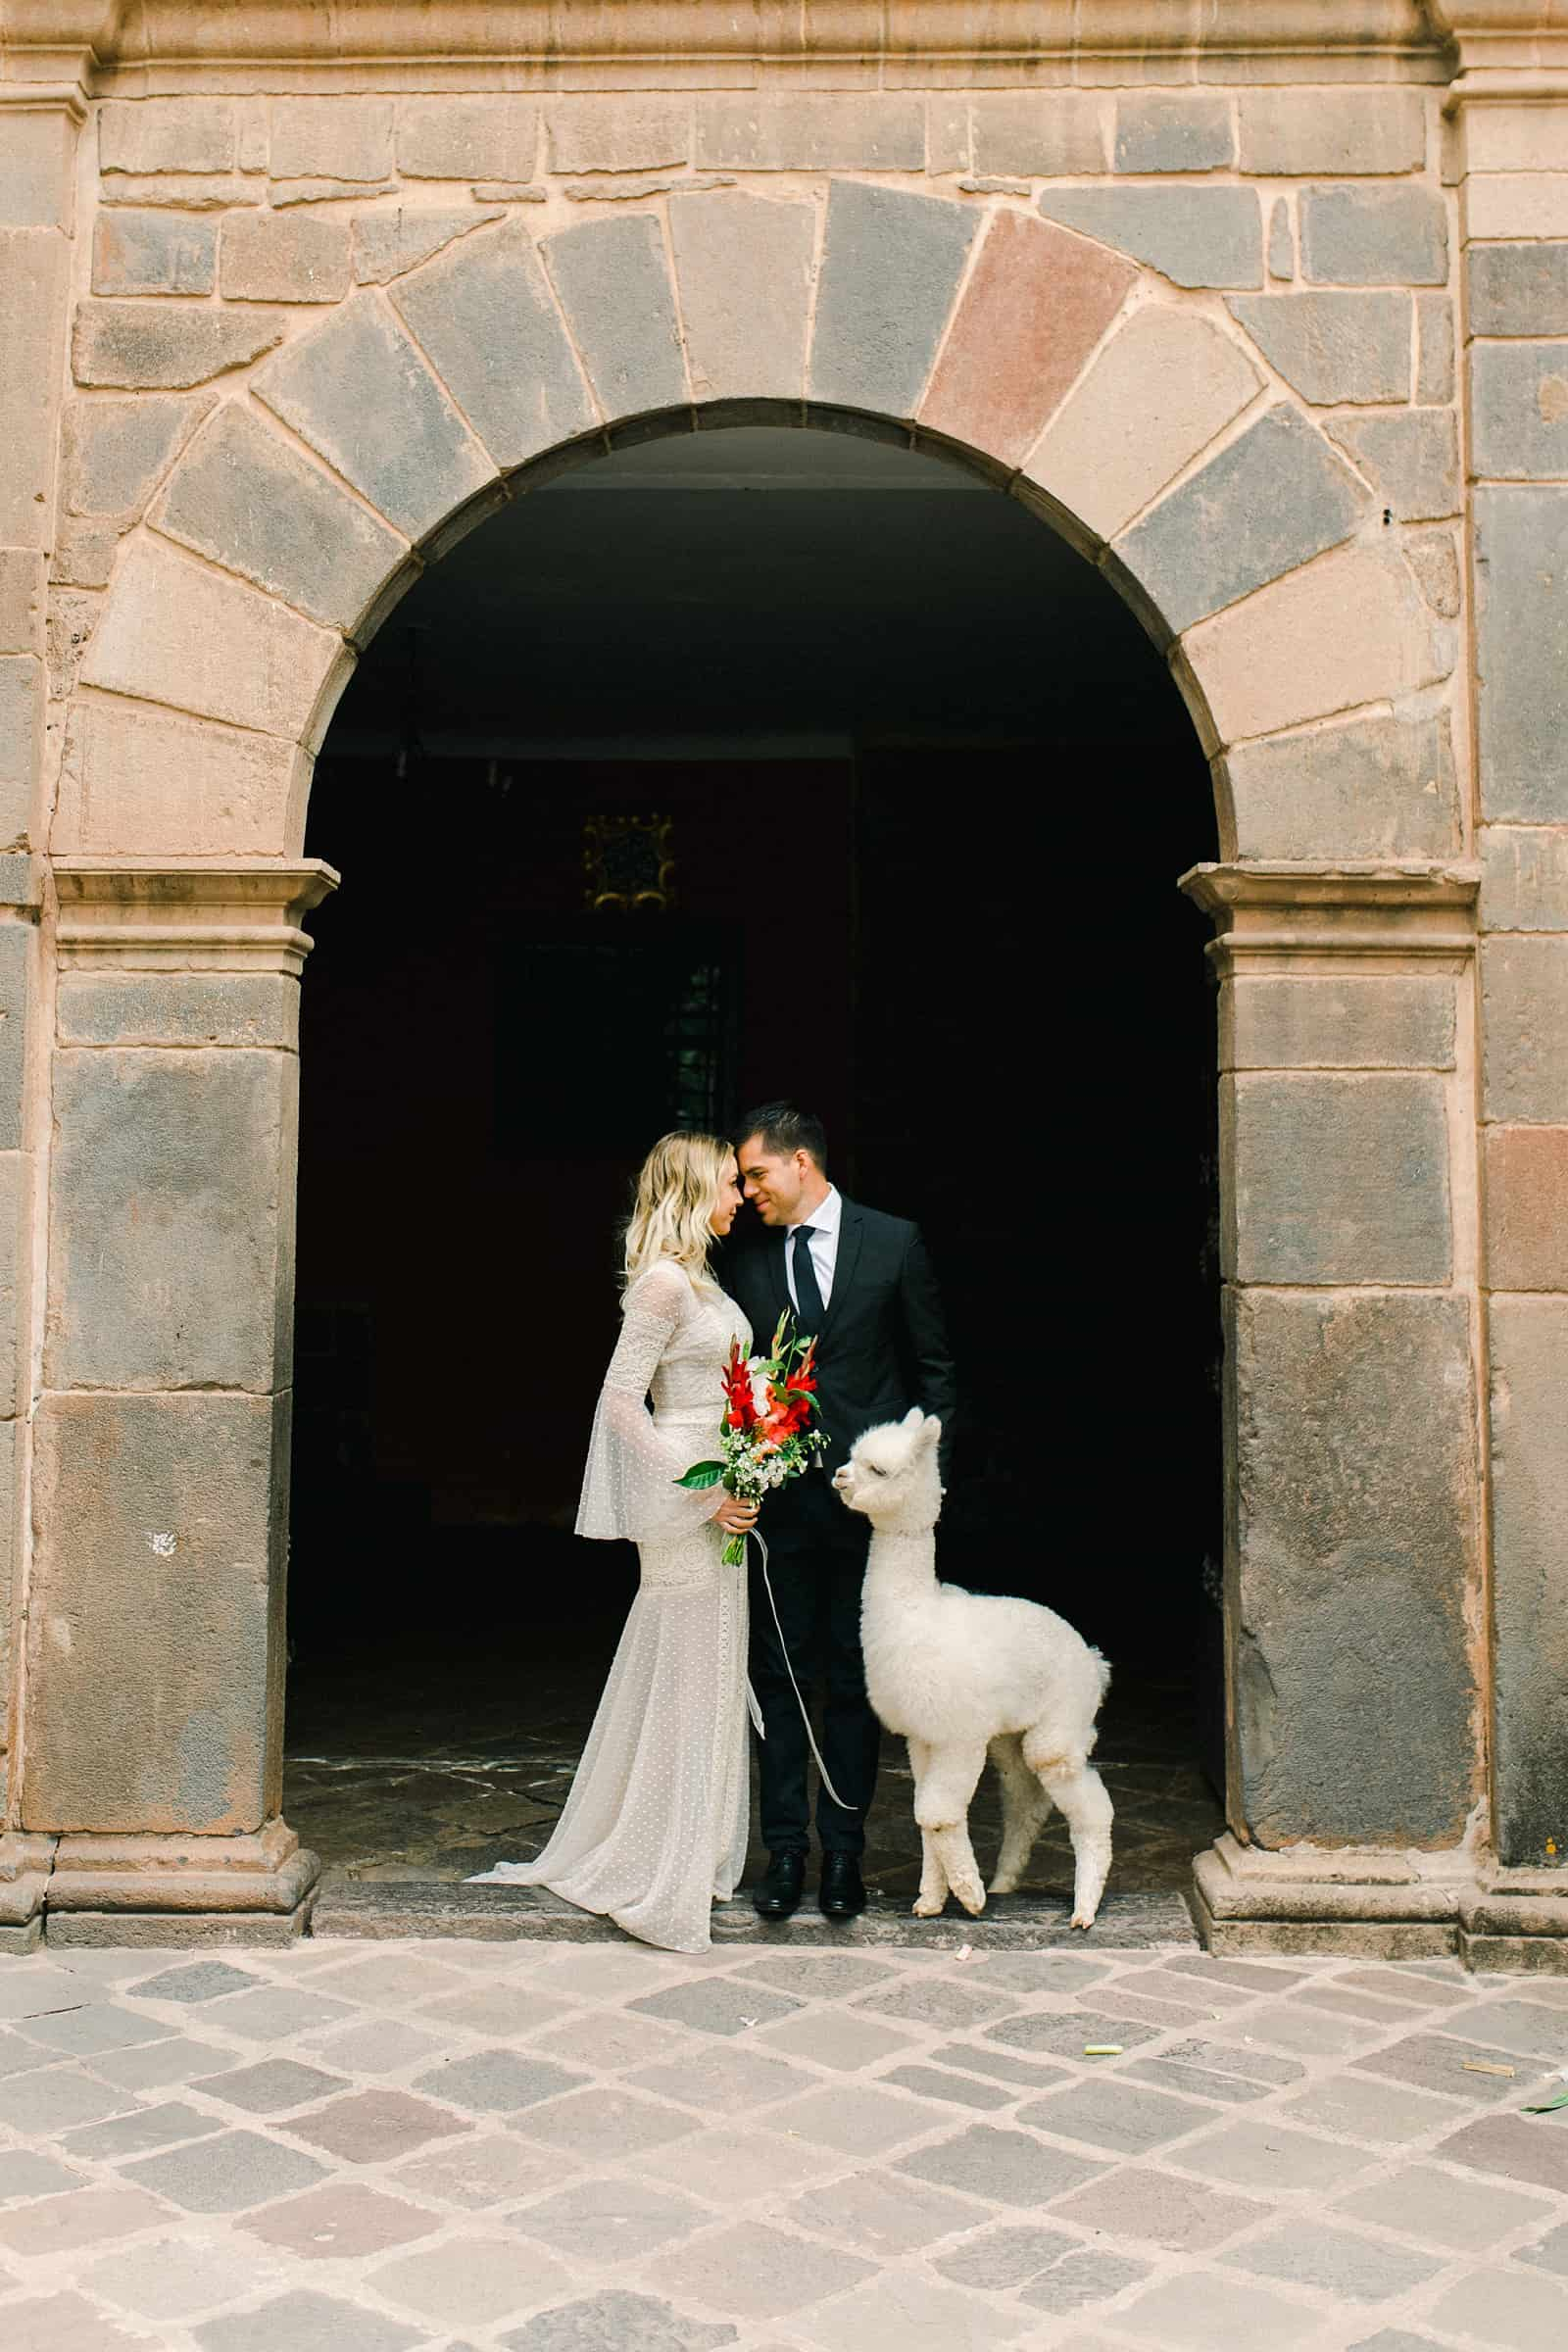 Cusco Peru Destination Wedding, travel wedding photography, Plaza de Armas red flowers boho wedding, bride and groom with white alpaca llama